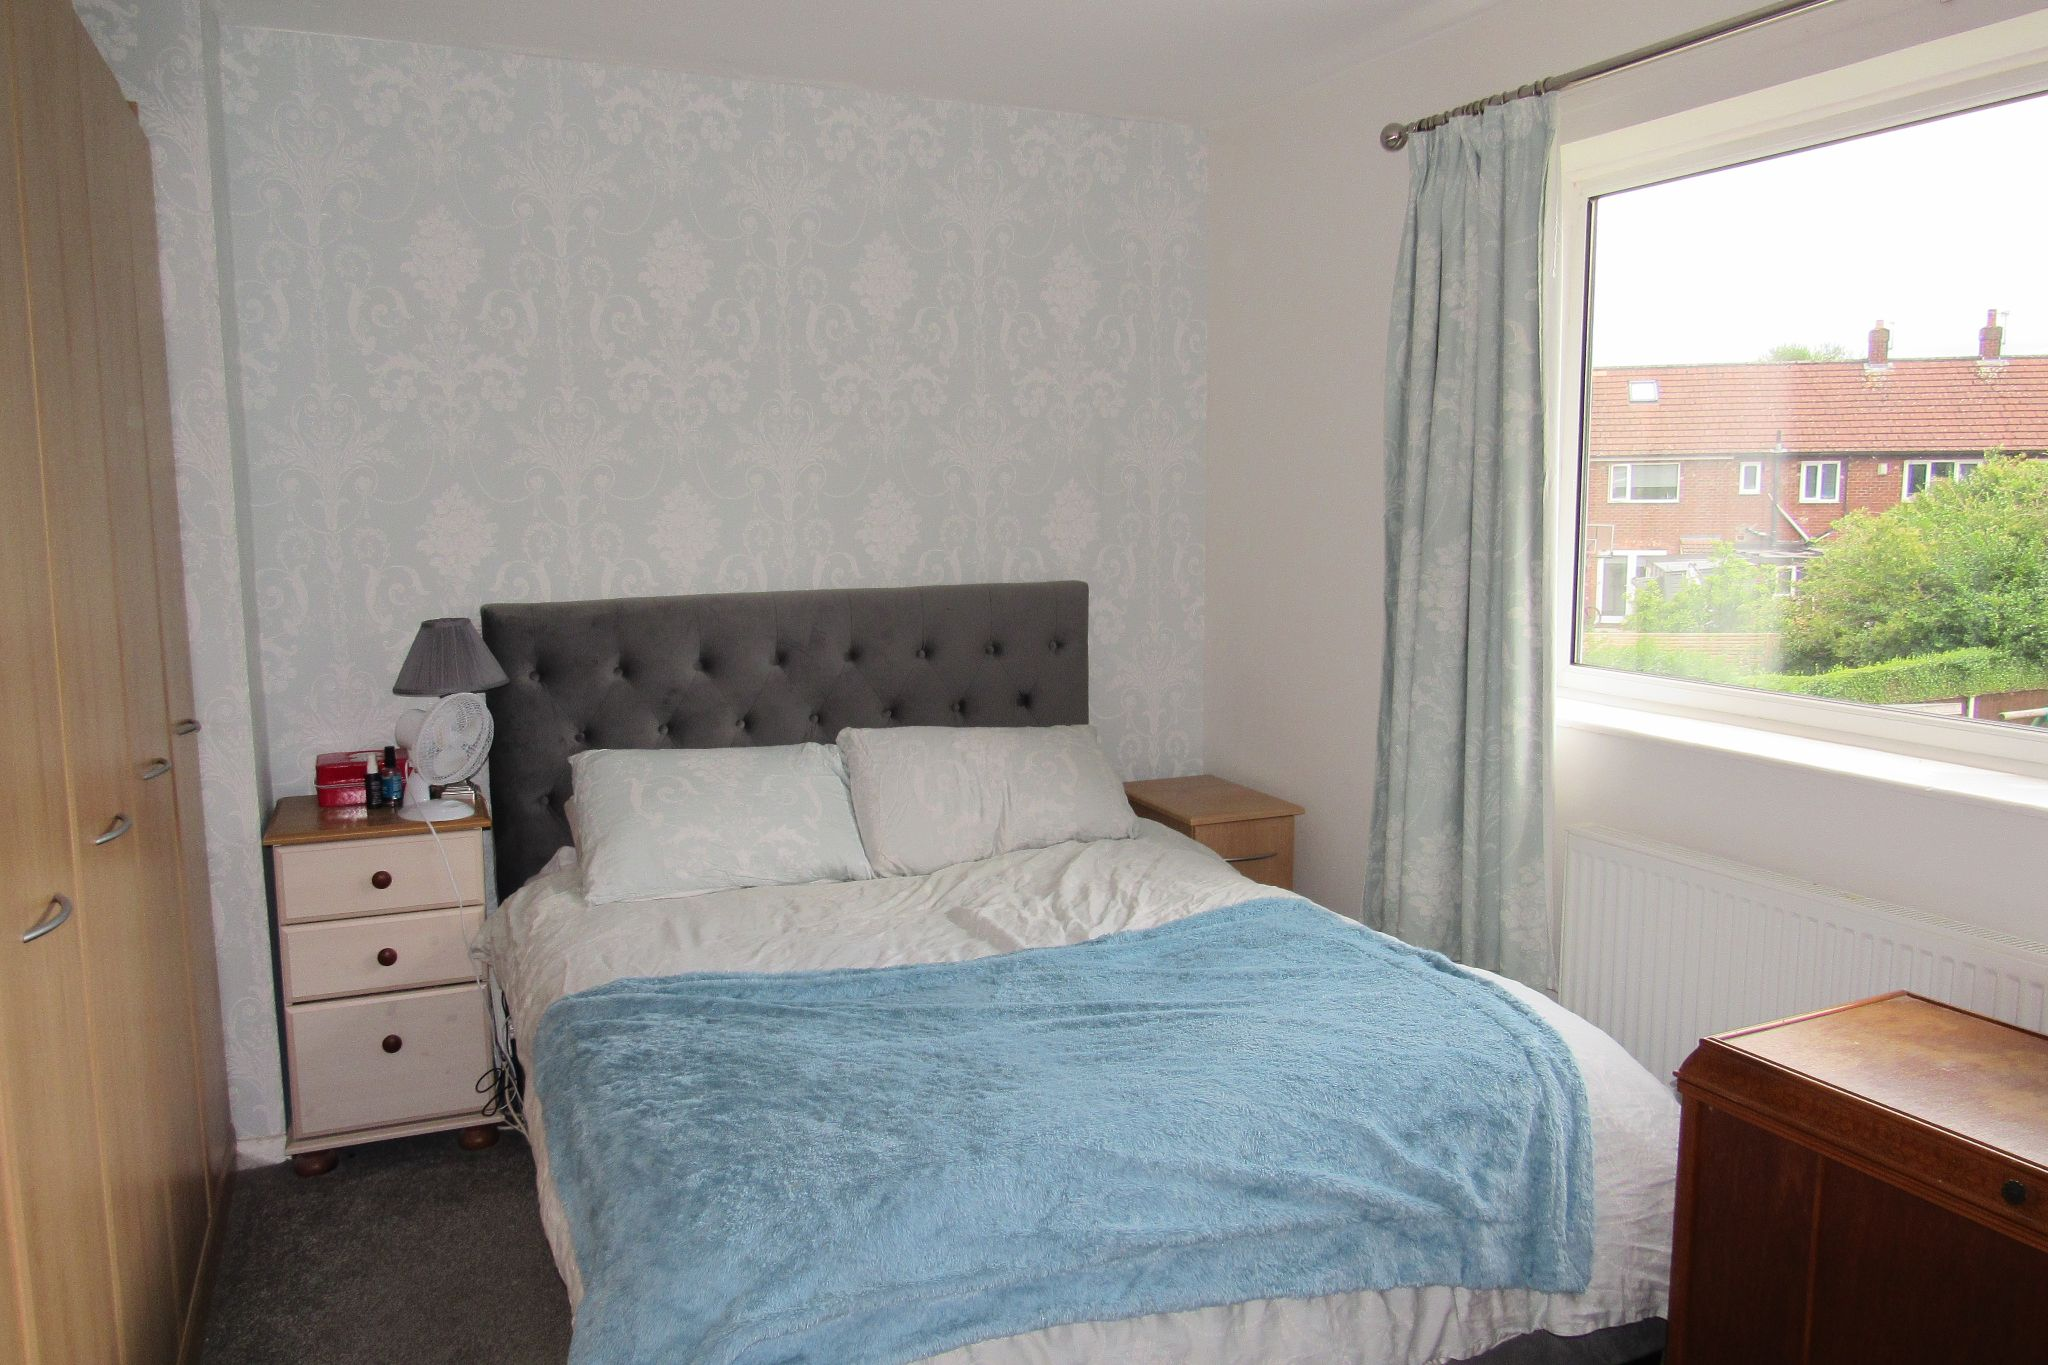 3 bedroom semi-detached house SSTC in Wythenshawe - Photograph 10.